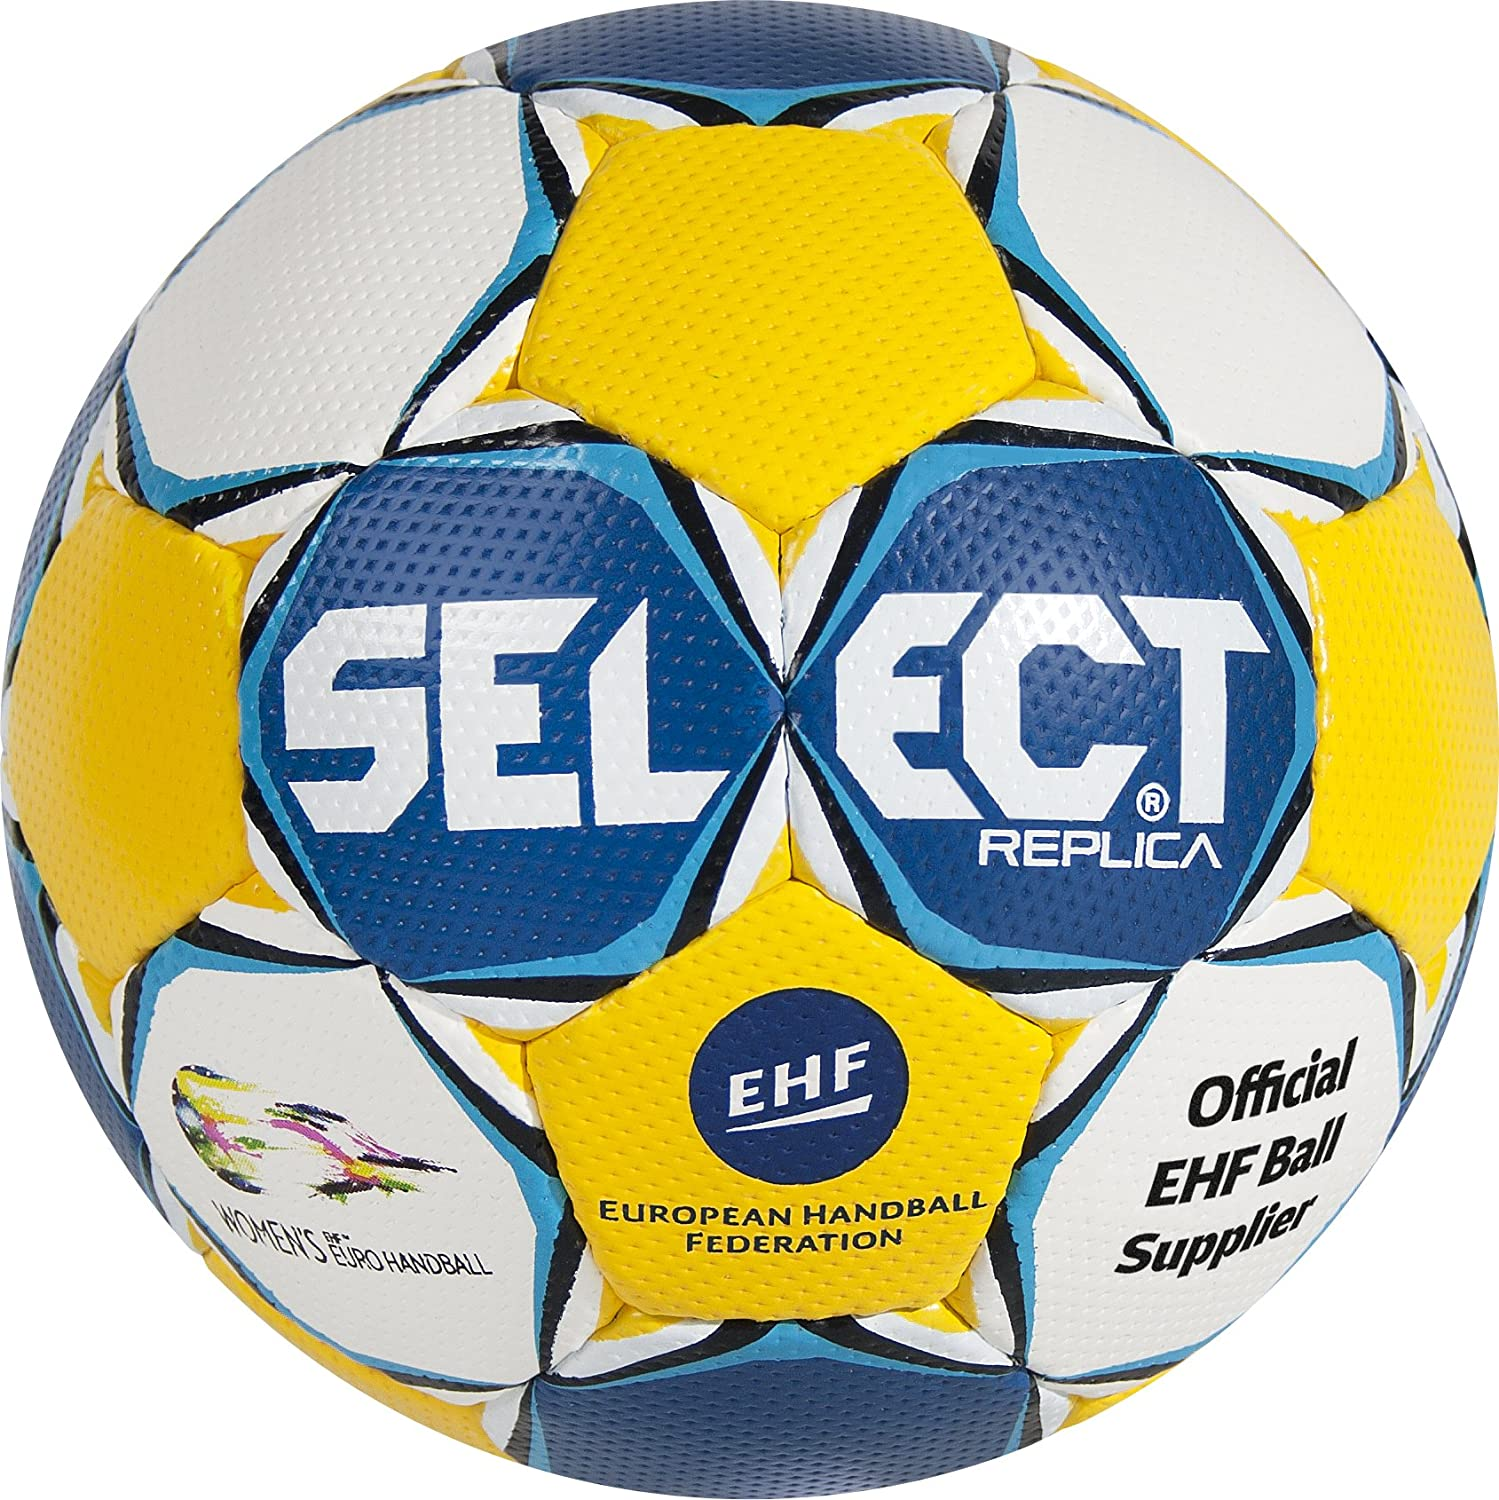 Select Ultimate Replica Ballon de Handball EC pour Femme 413413481